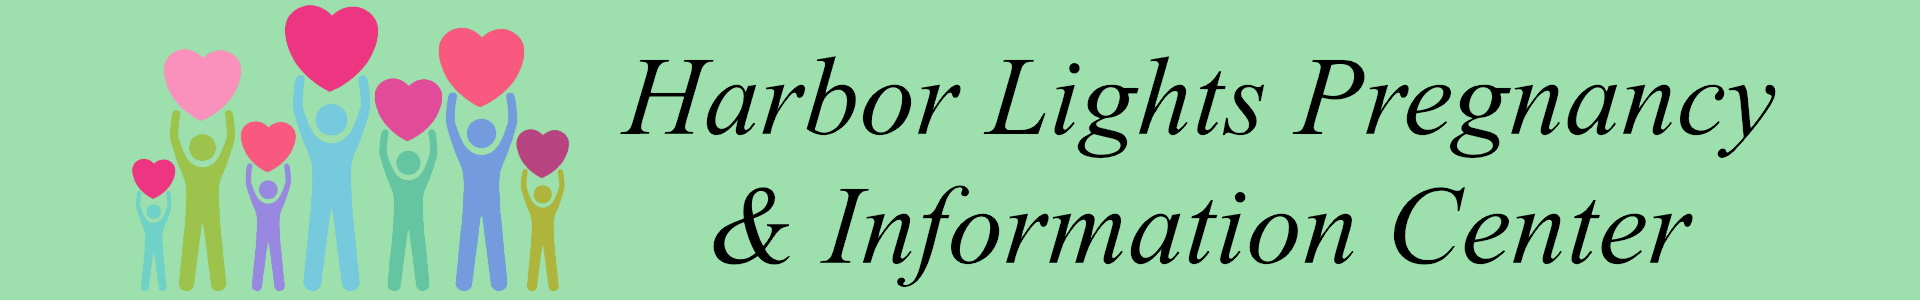 Harbor Lights Pregnancy & Information Center